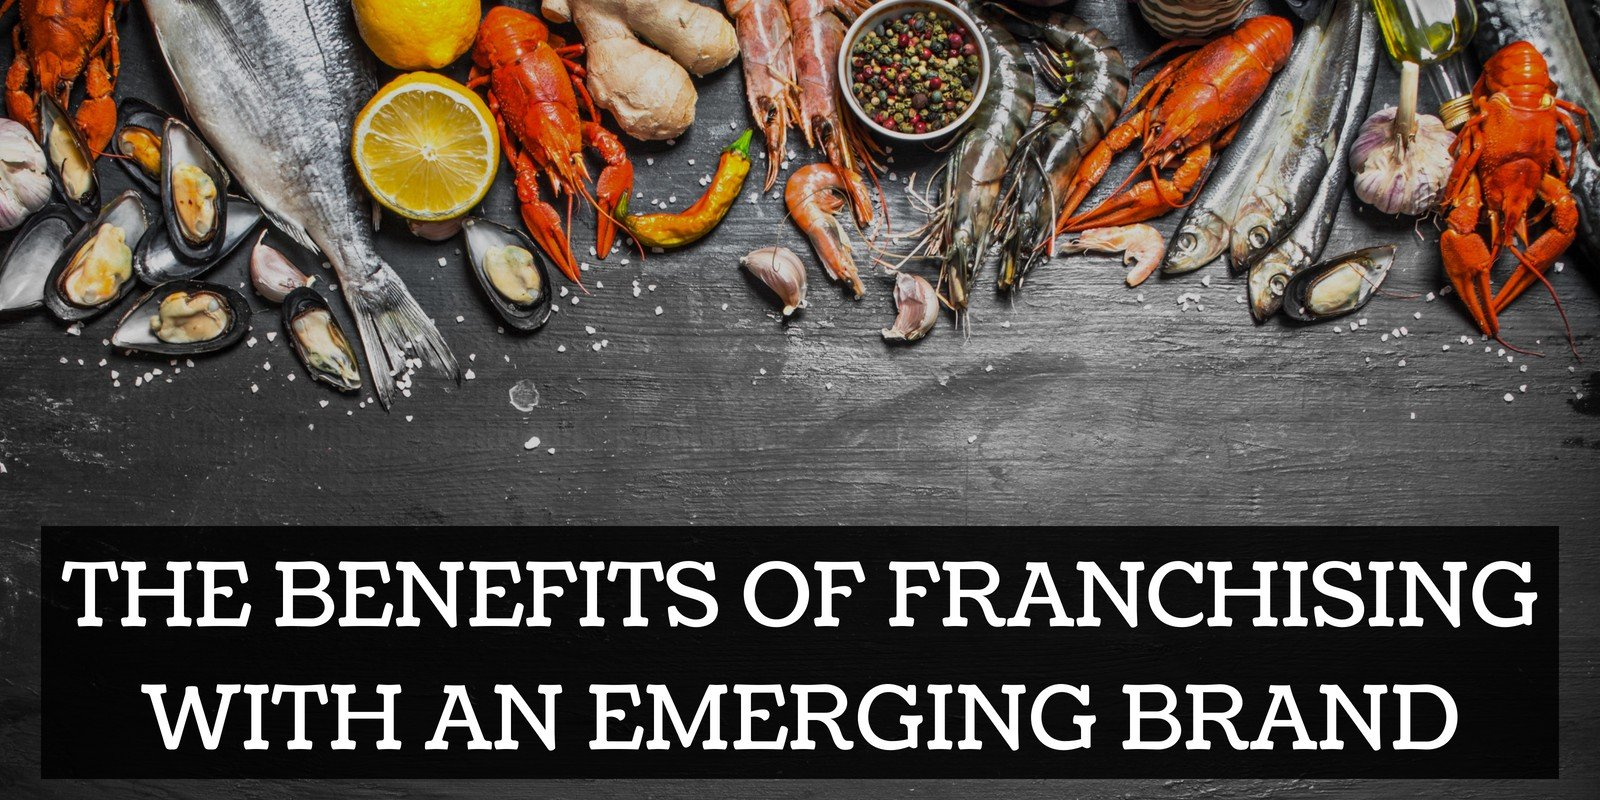 The-Benefits-of-Franchising-with-an-Emerging-Brand